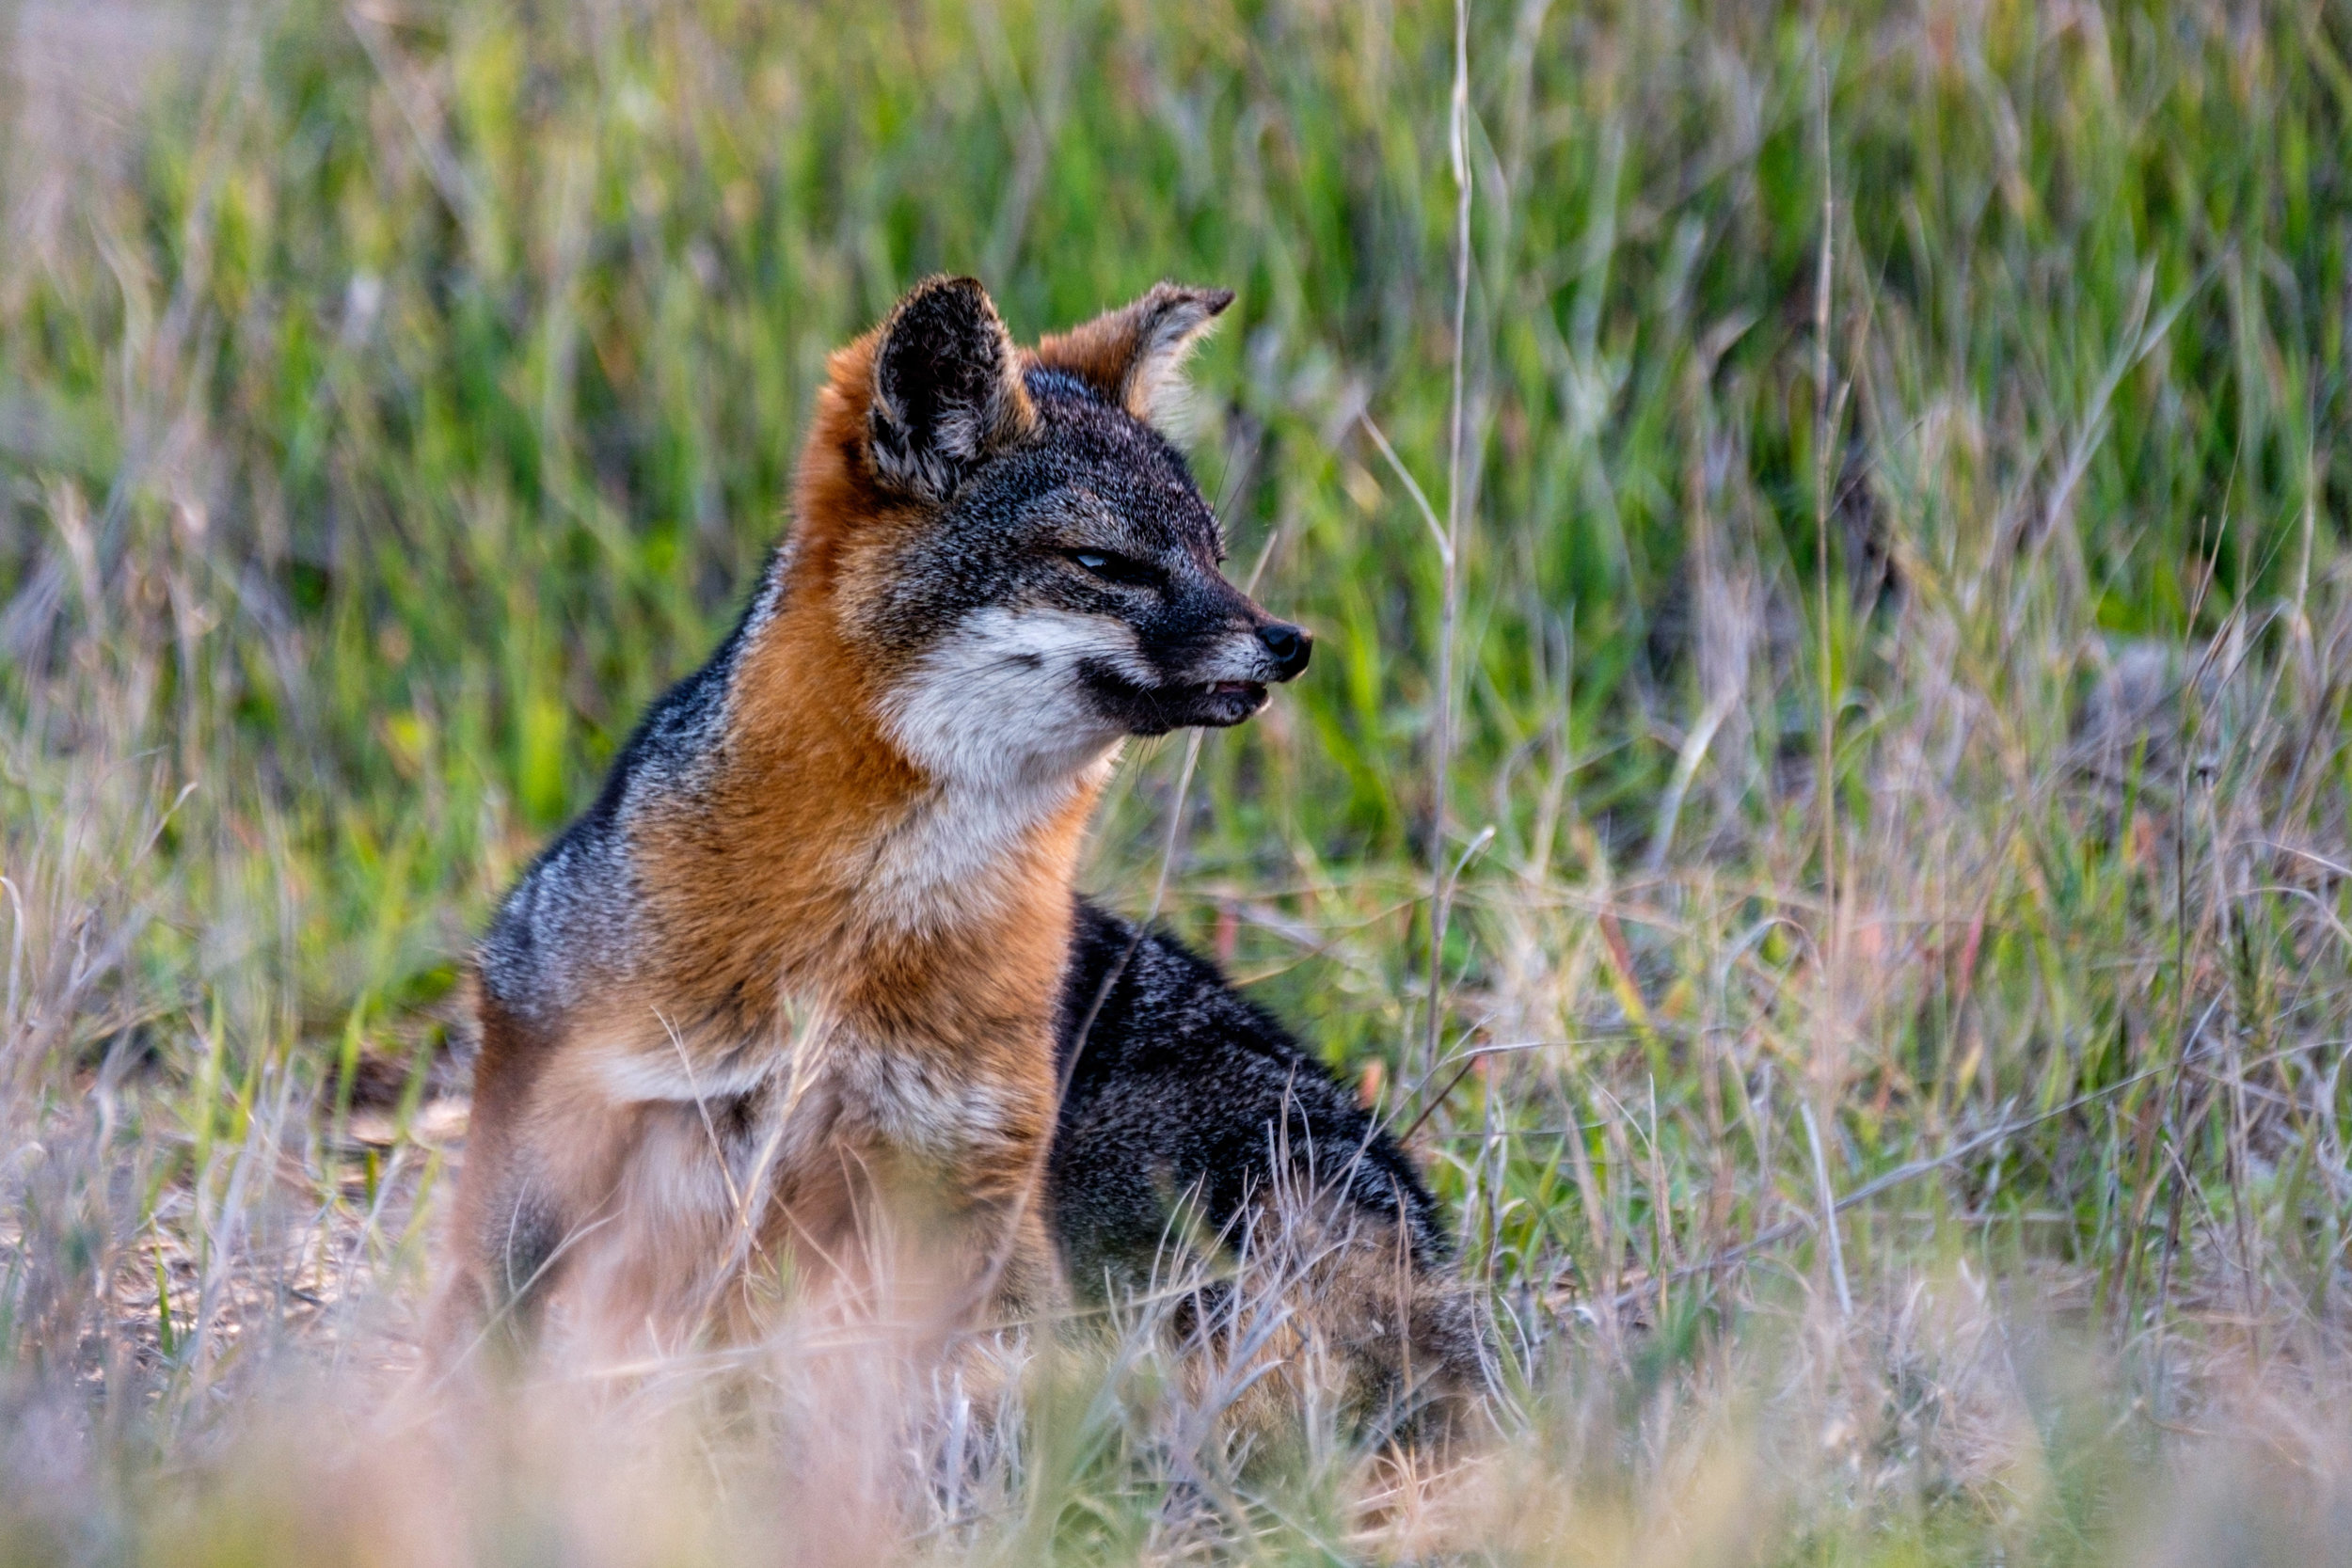 The Santa Cruz Island fox lives only on Santa Cruz Island.